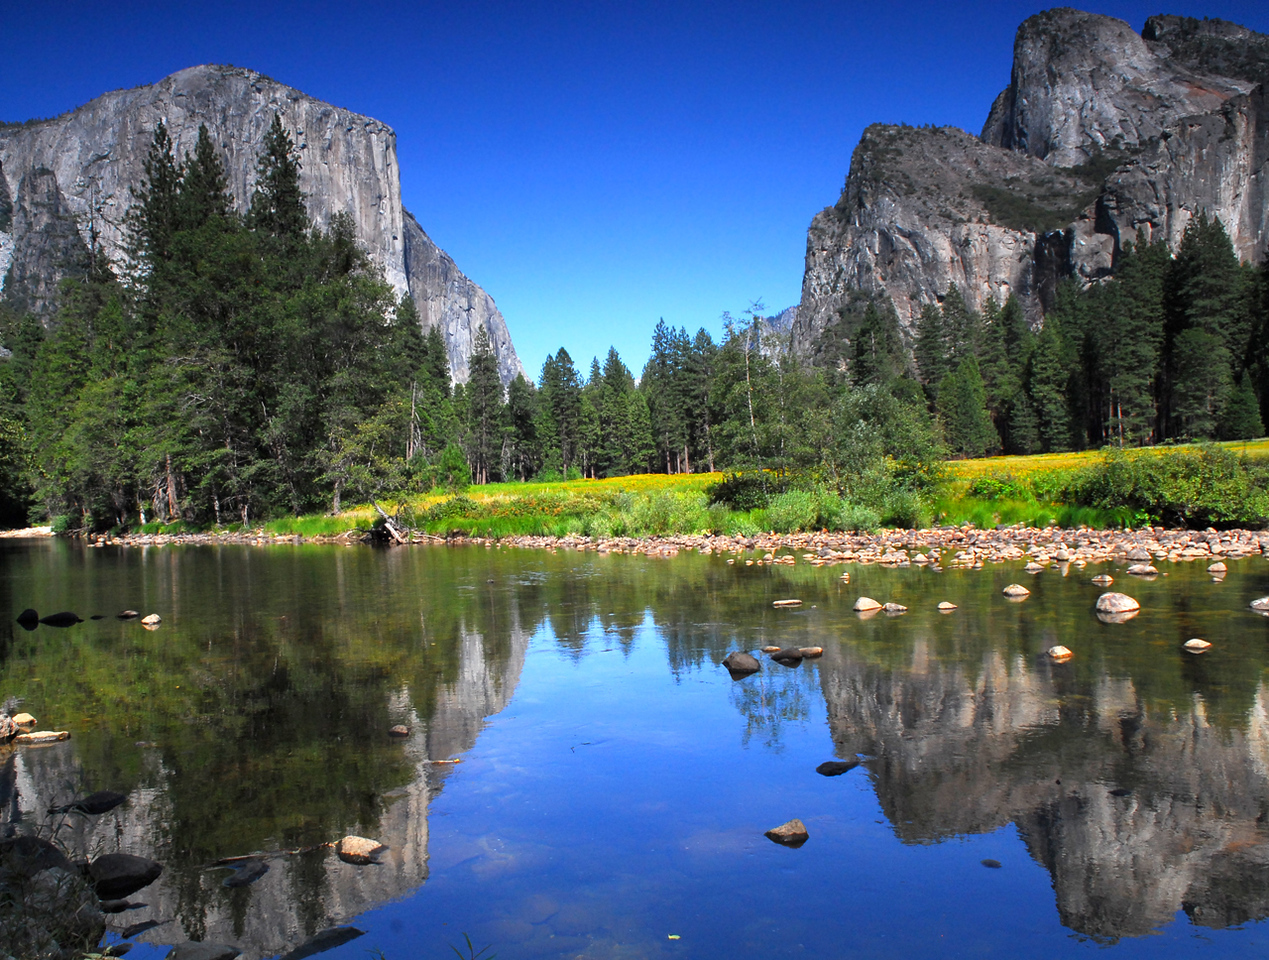 Summertime view of El Capitan in Yosemite National Park from the Merced River